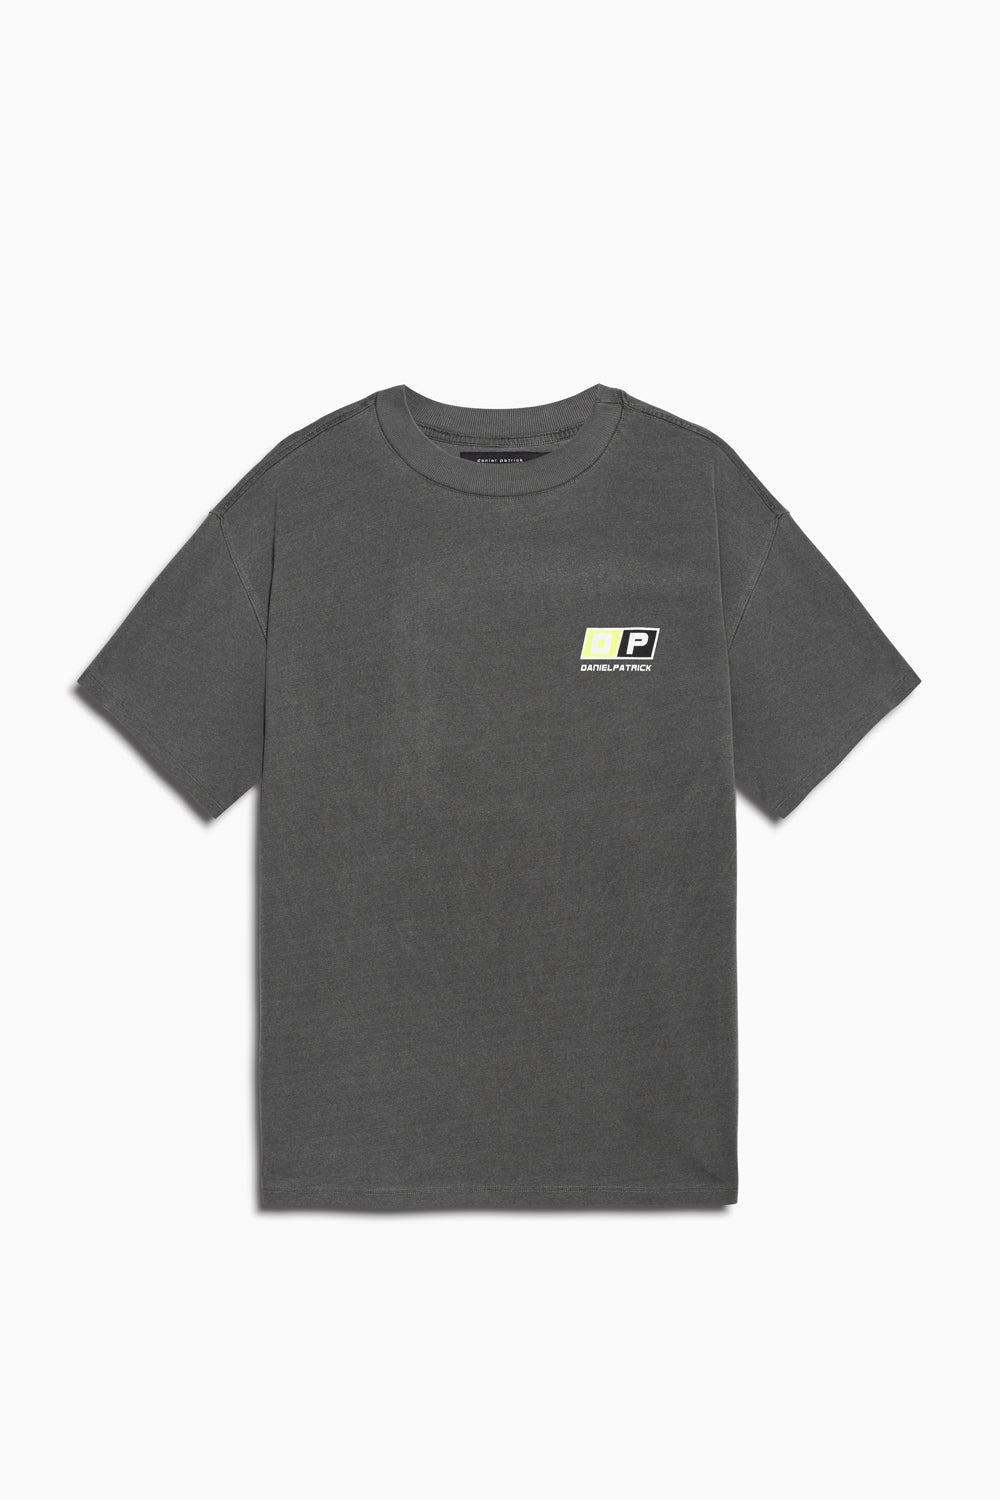 motorsport tee in vintage black/neon yellow by daniel patrick